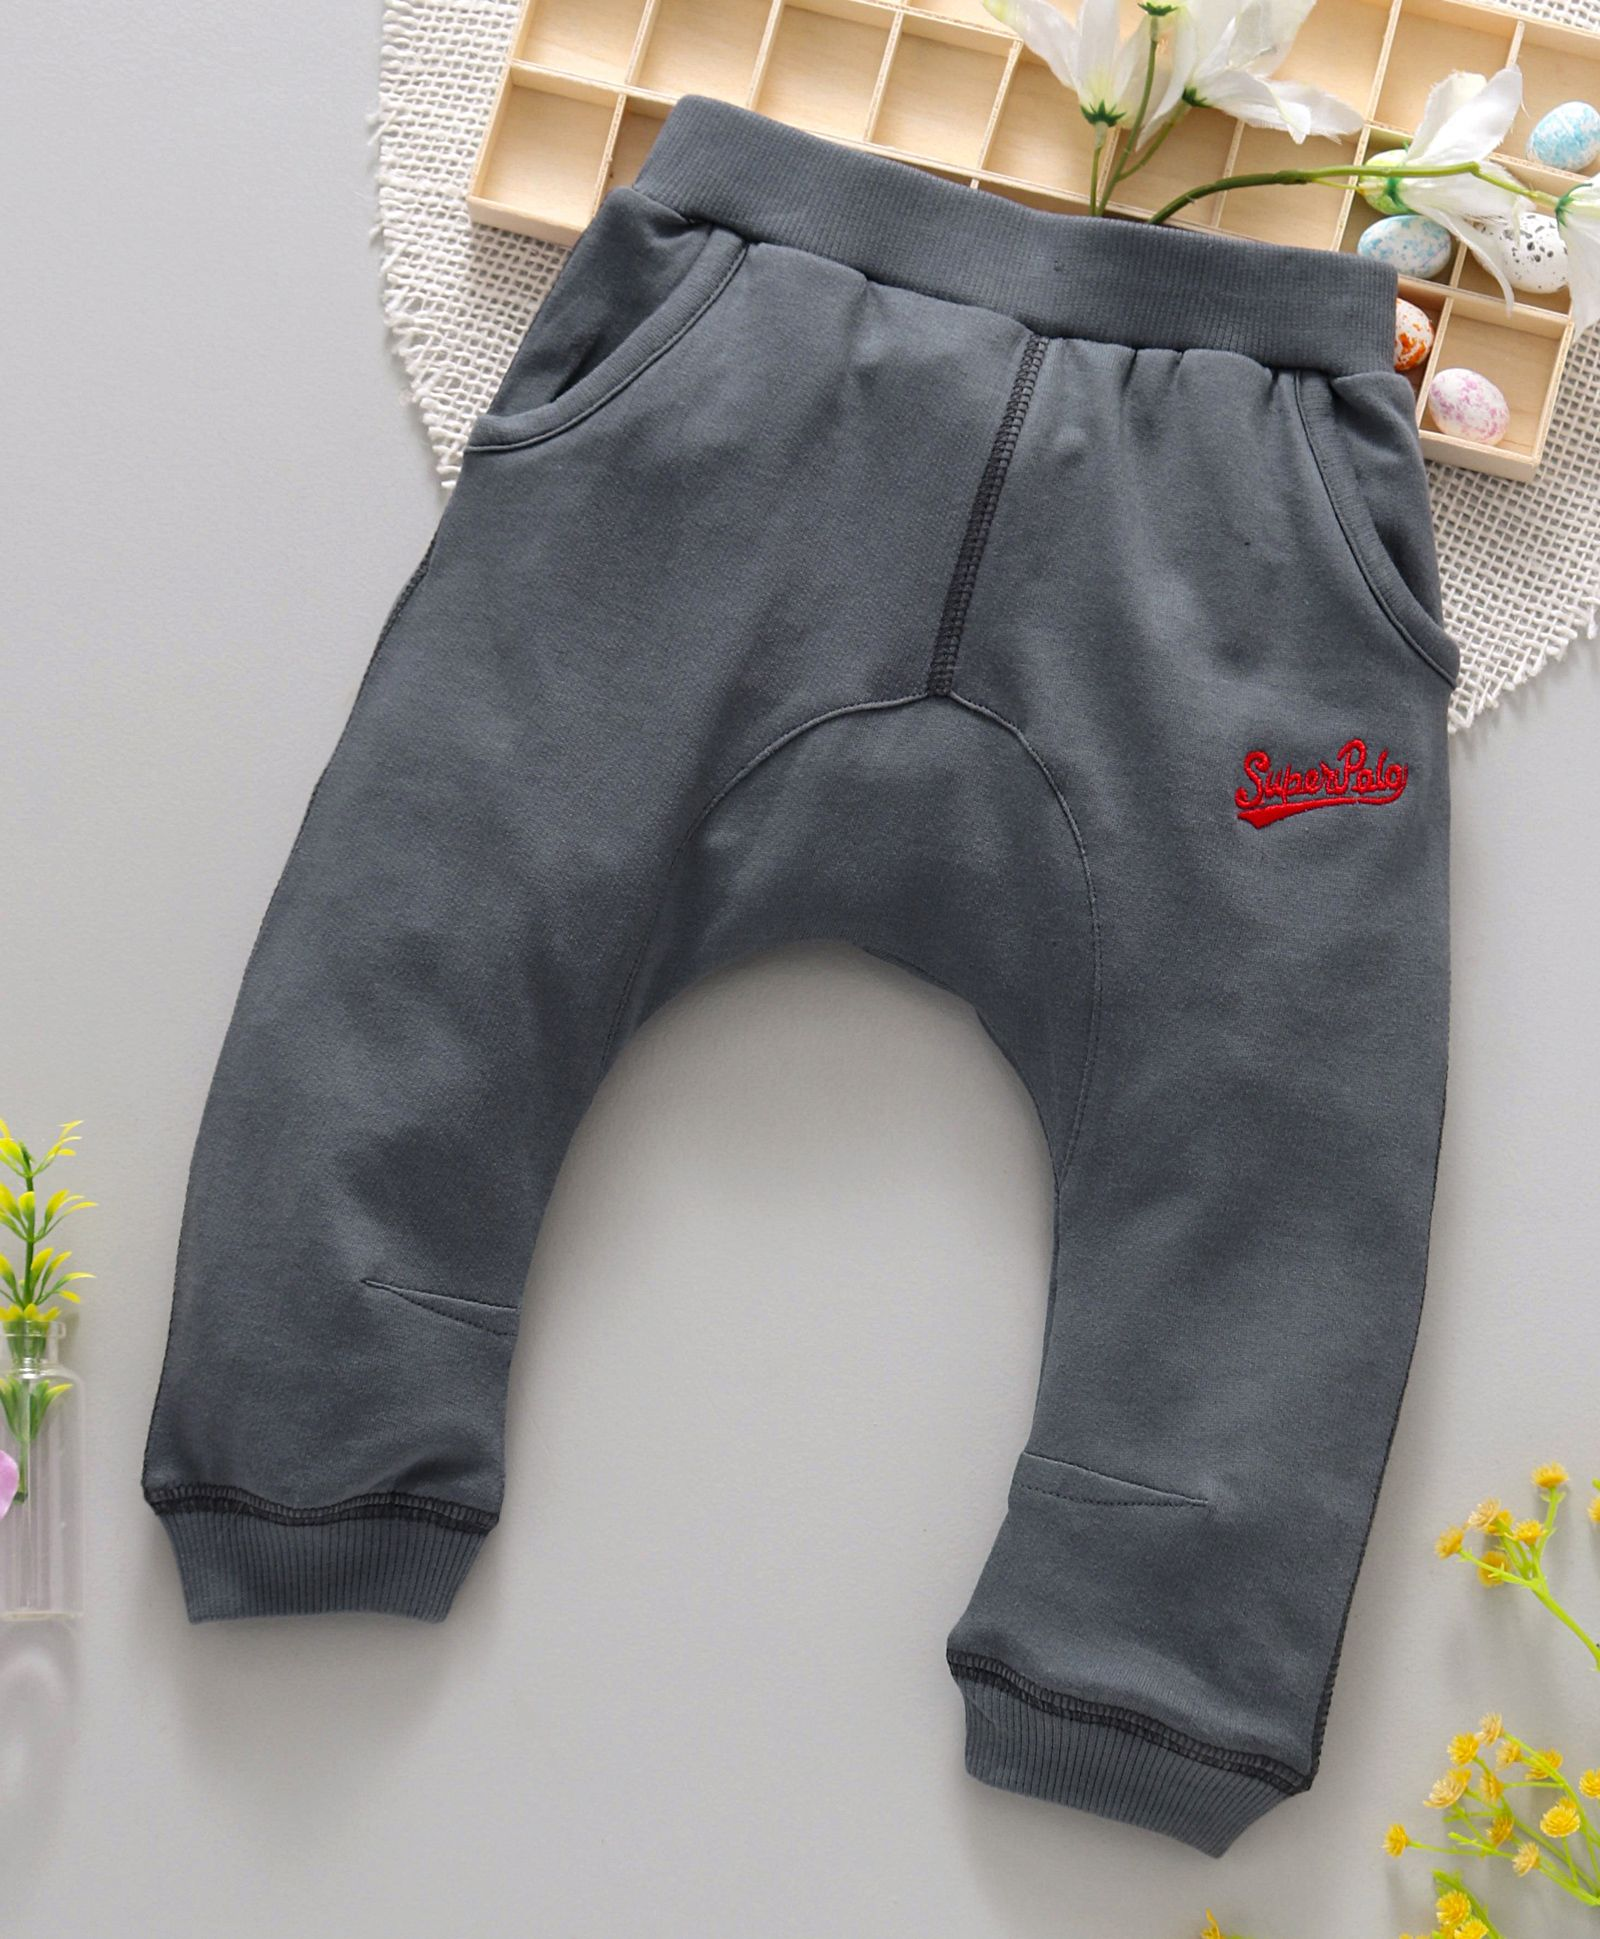 9f2679ae Buy ToffyHouse Diaper Leggings Superpolo Embroidered Dark Grey ...